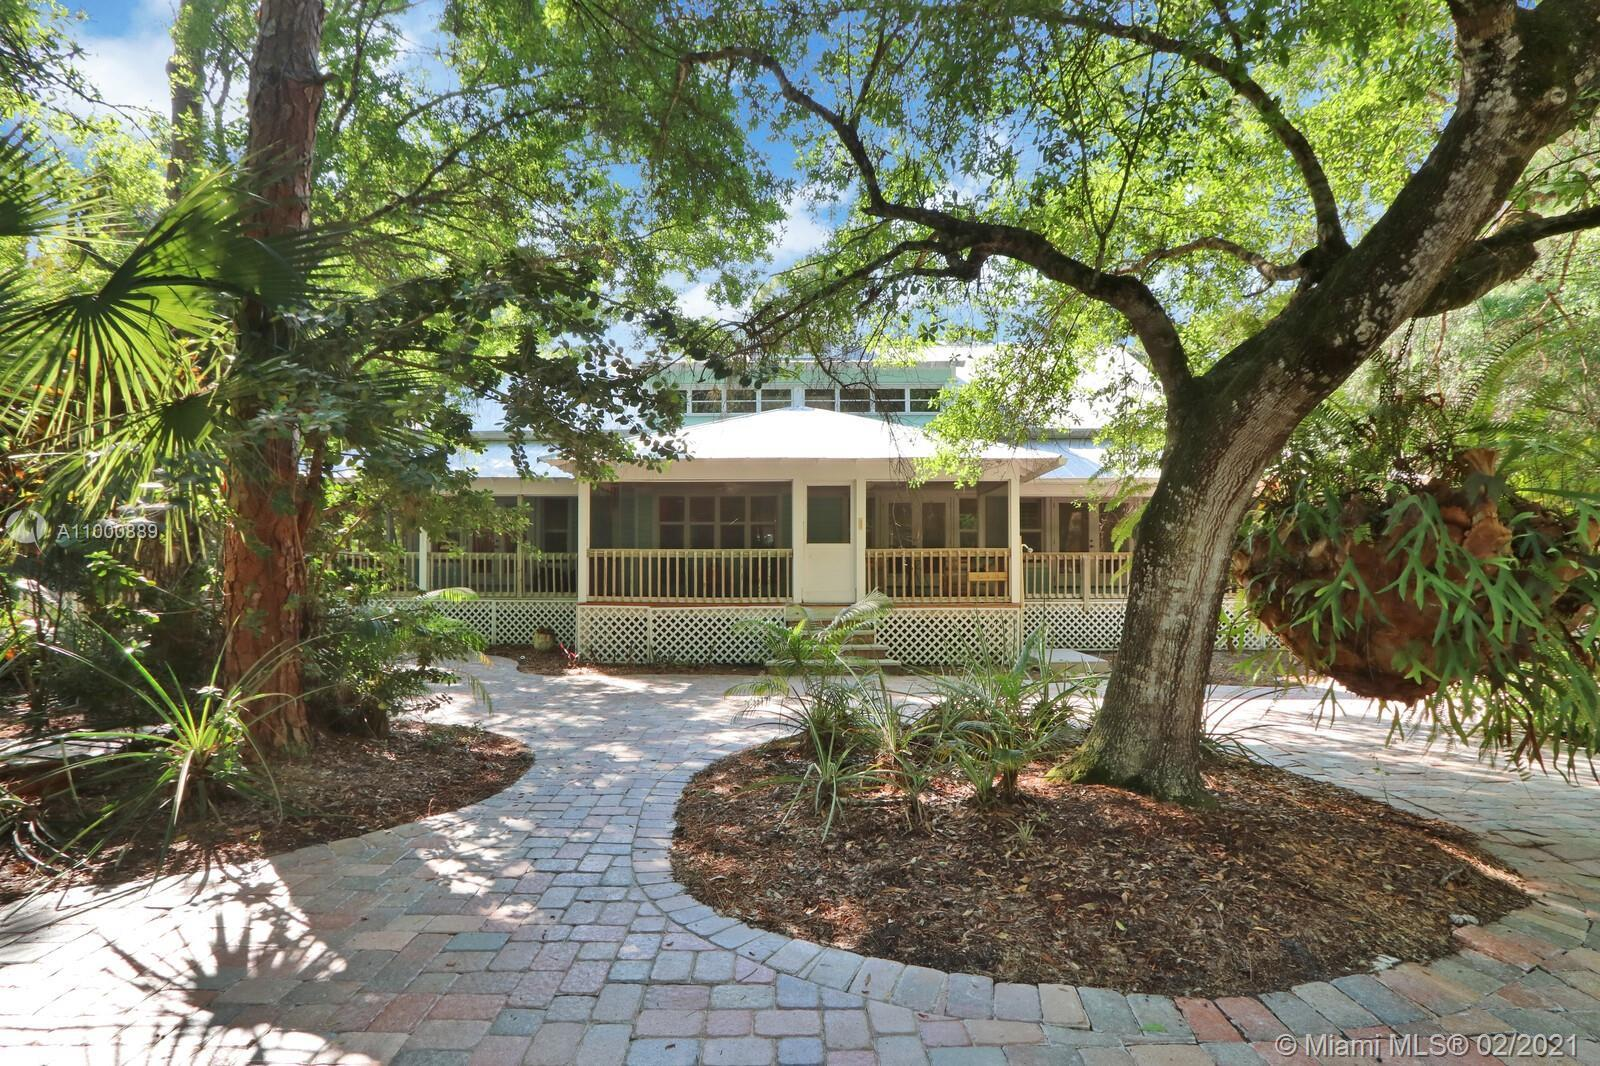 One of the most majestic homes you will find in Jupiter Farms.  Southern plantation home with a full